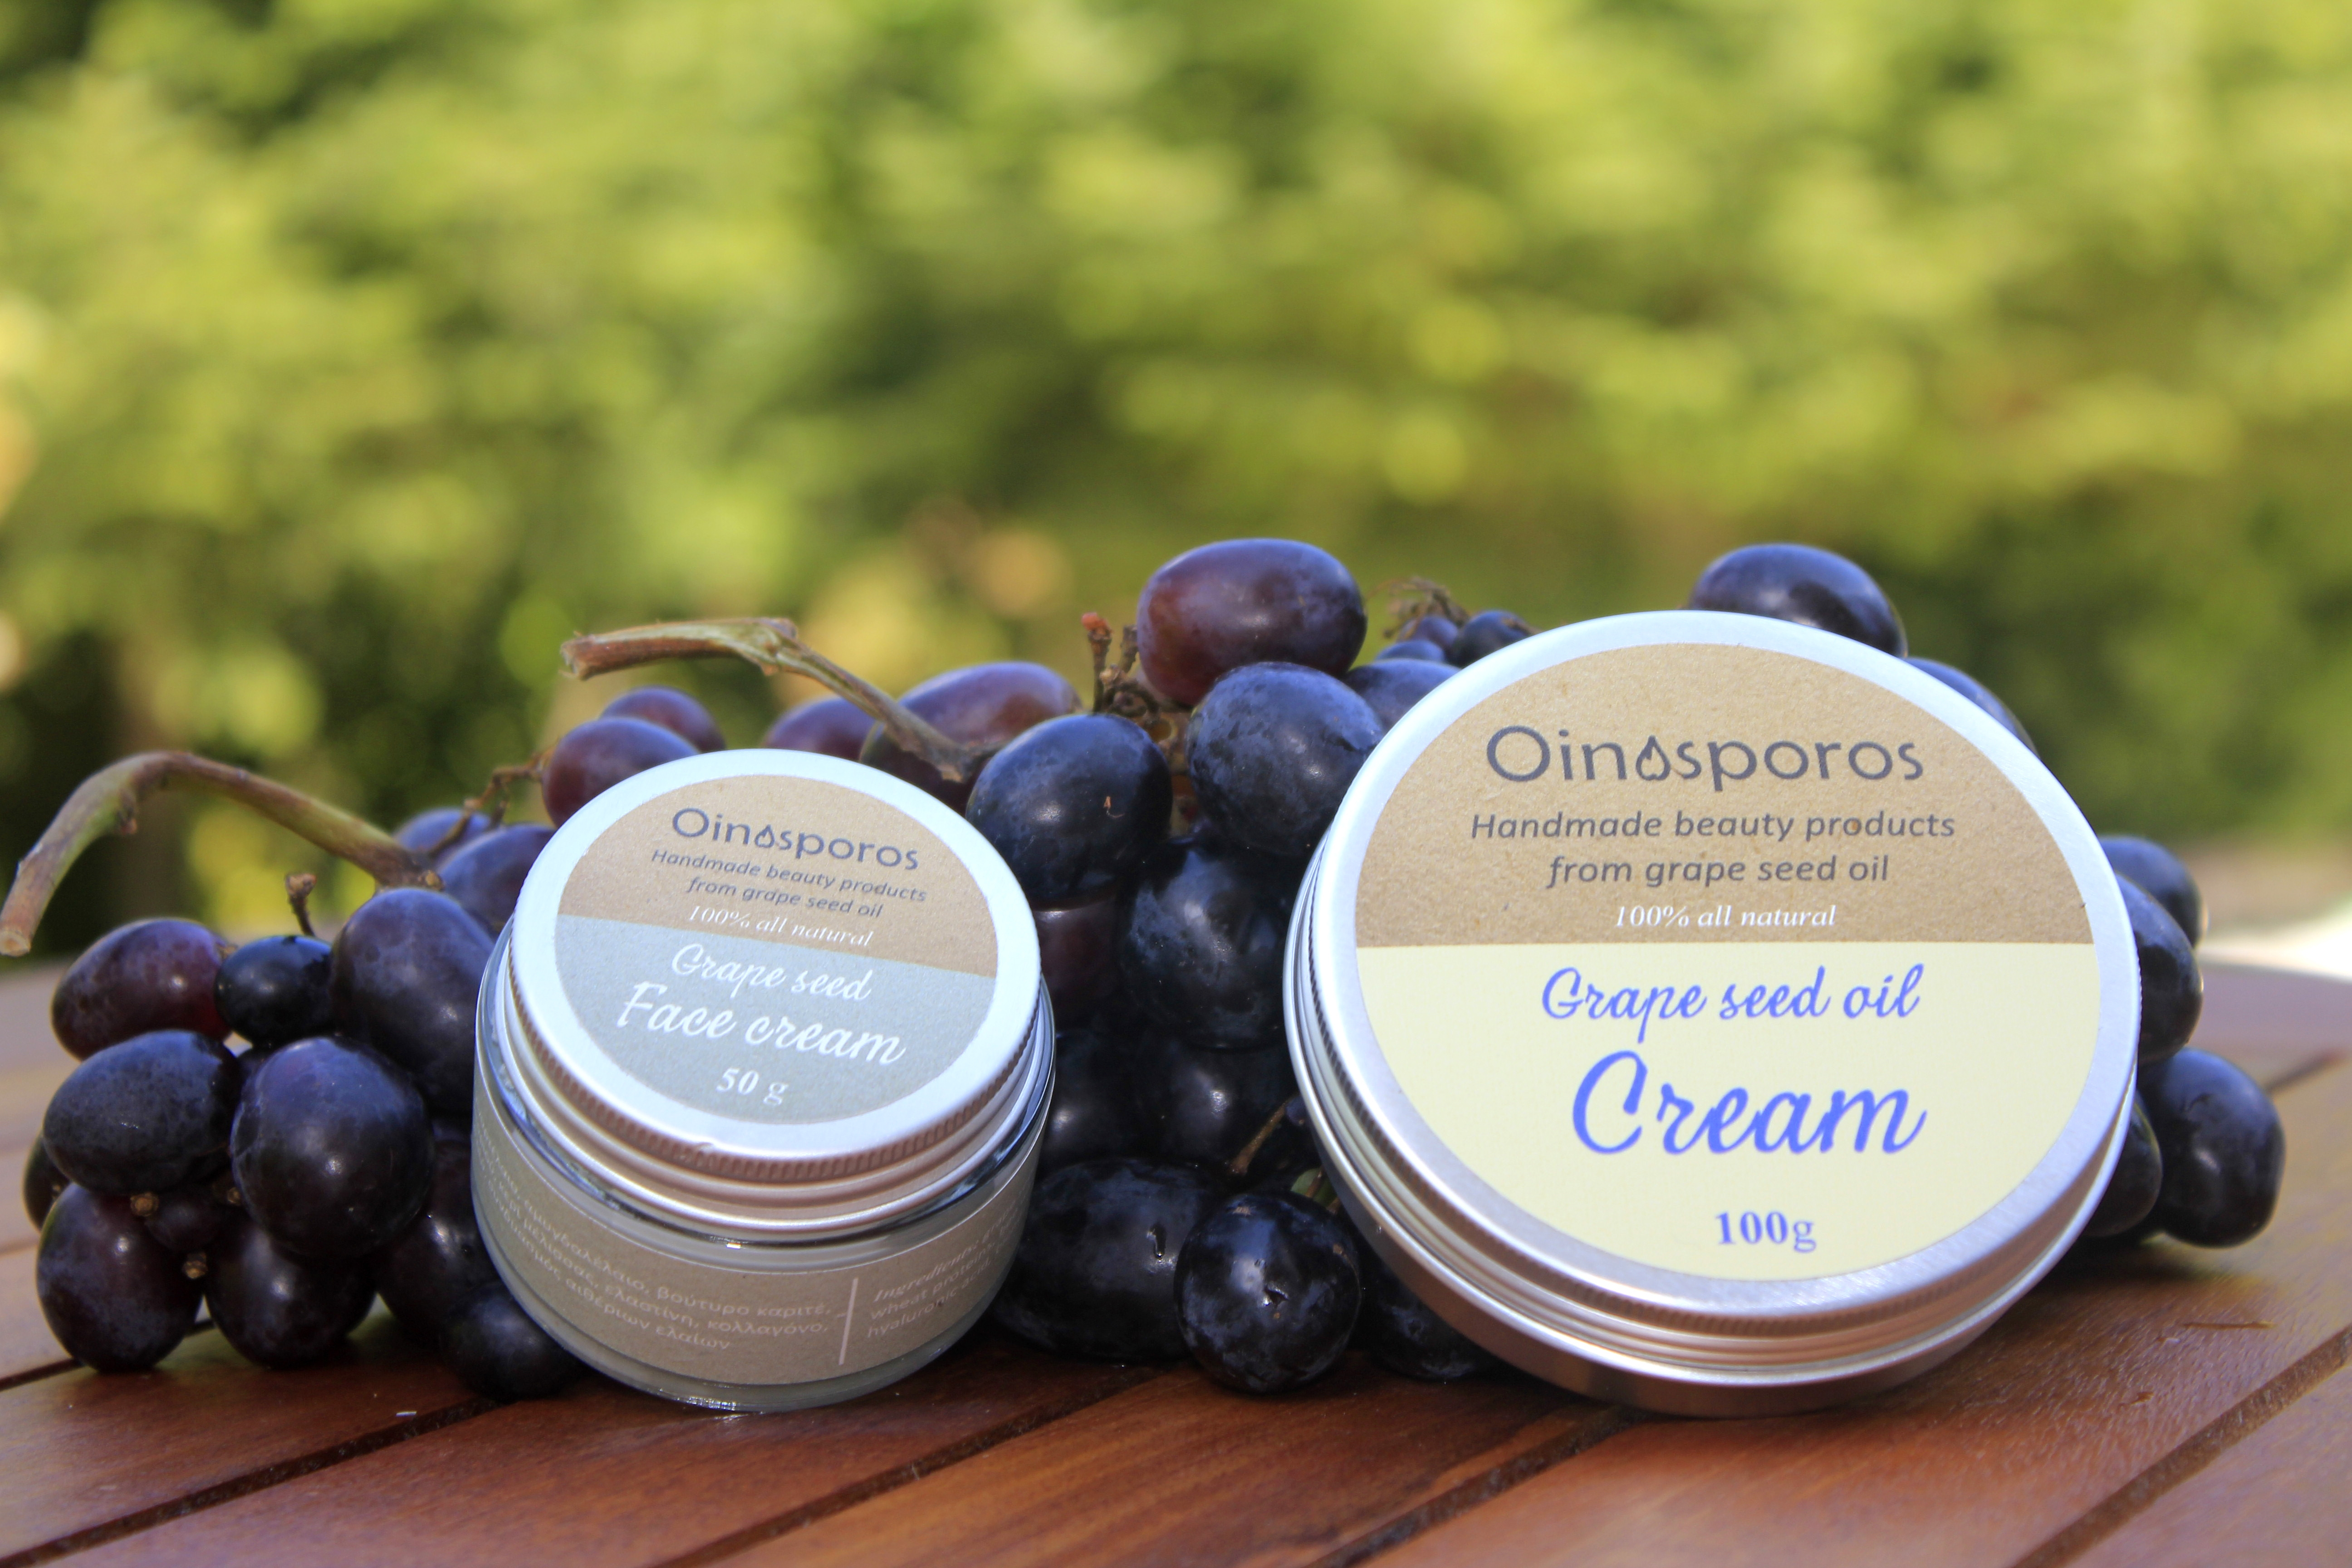 Oinosporos | Handmade beauty products from grape seed oil